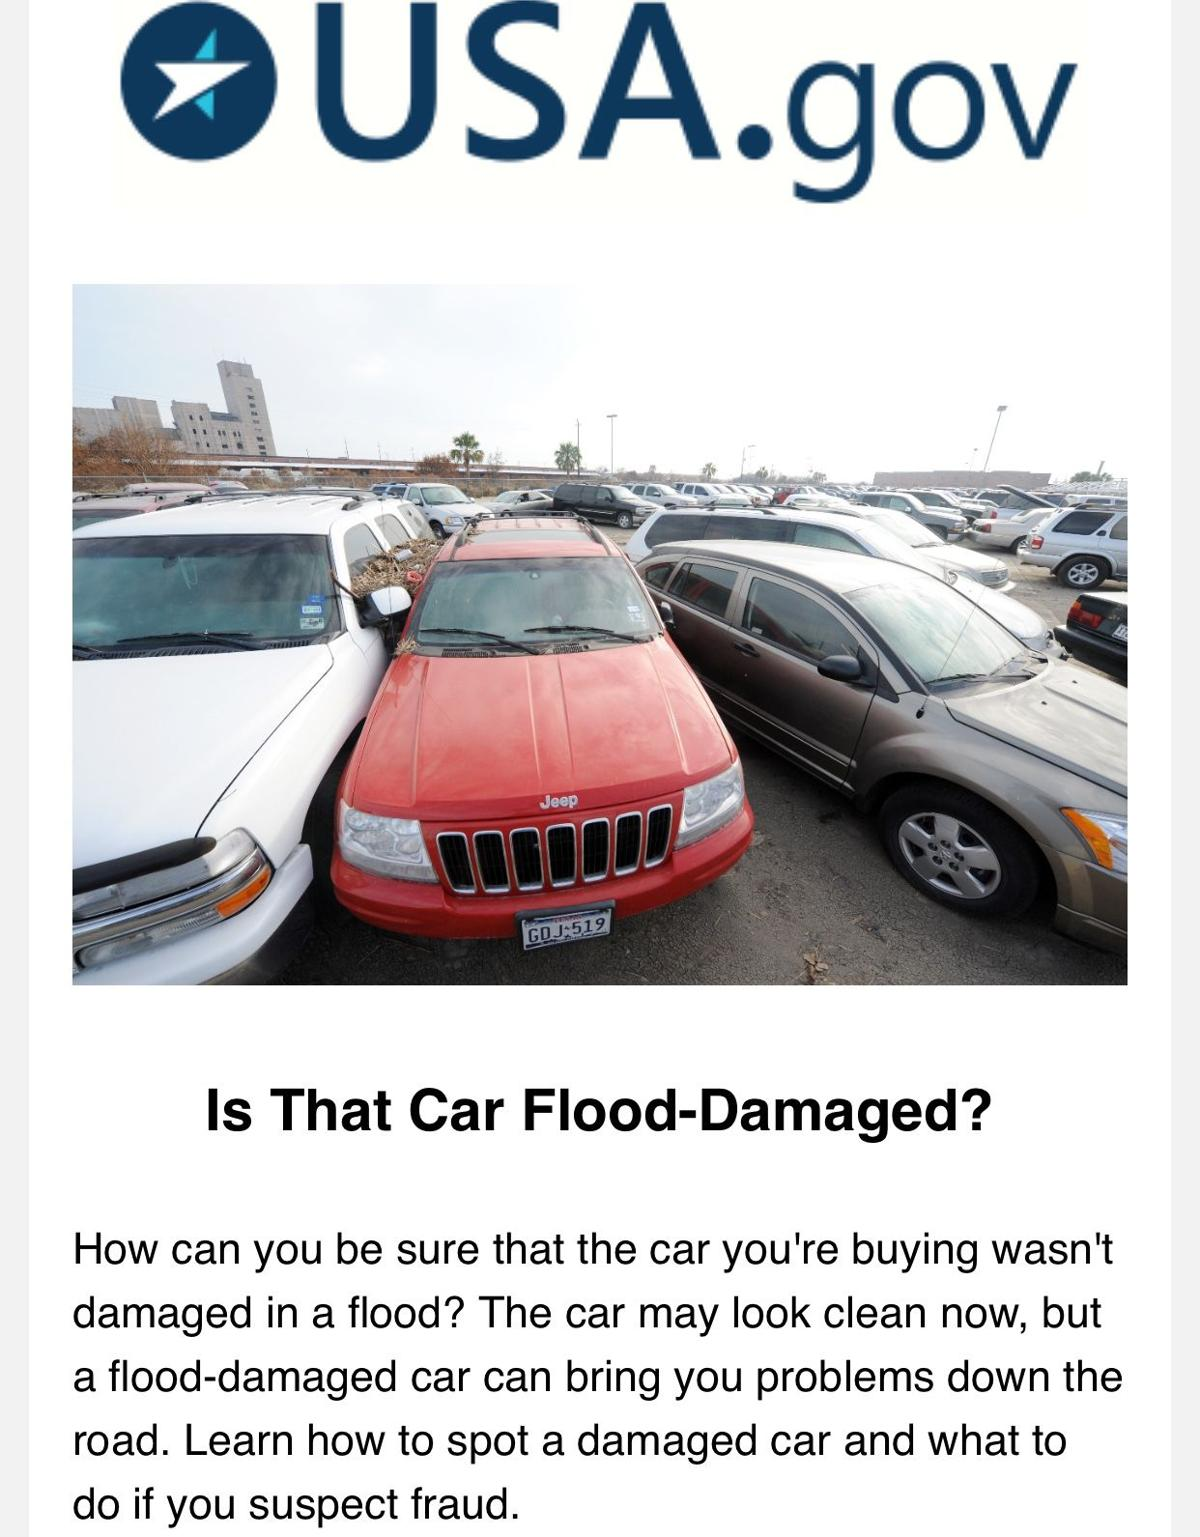 Buyer beware: Flood-damaged cars for sale   Business ...